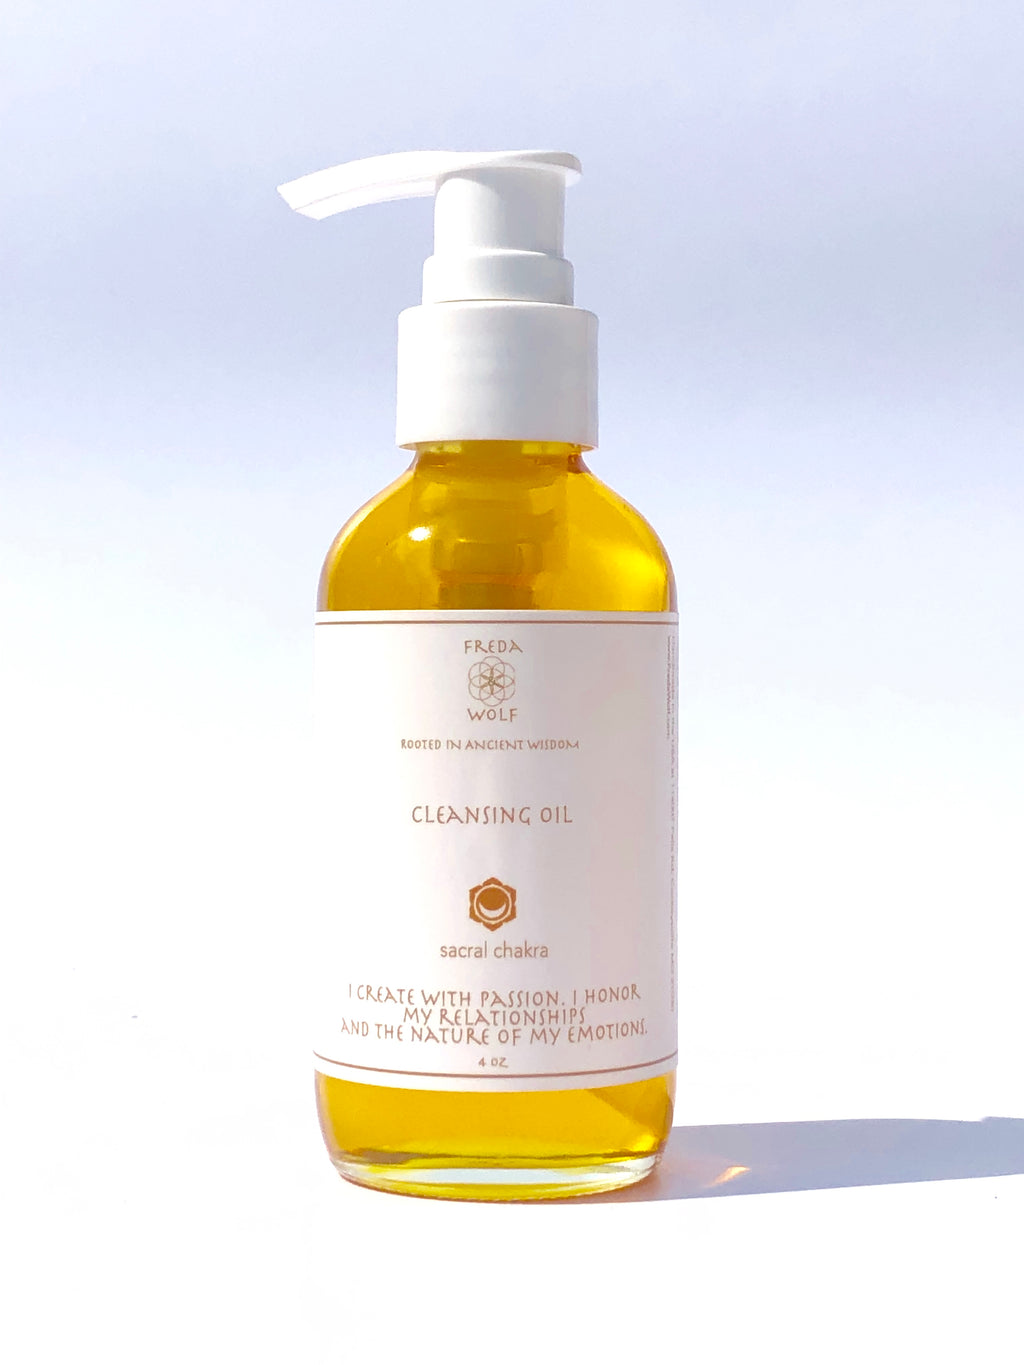 Cleansing Oil 4 oz - remove makeup, minimize pores, soften skin